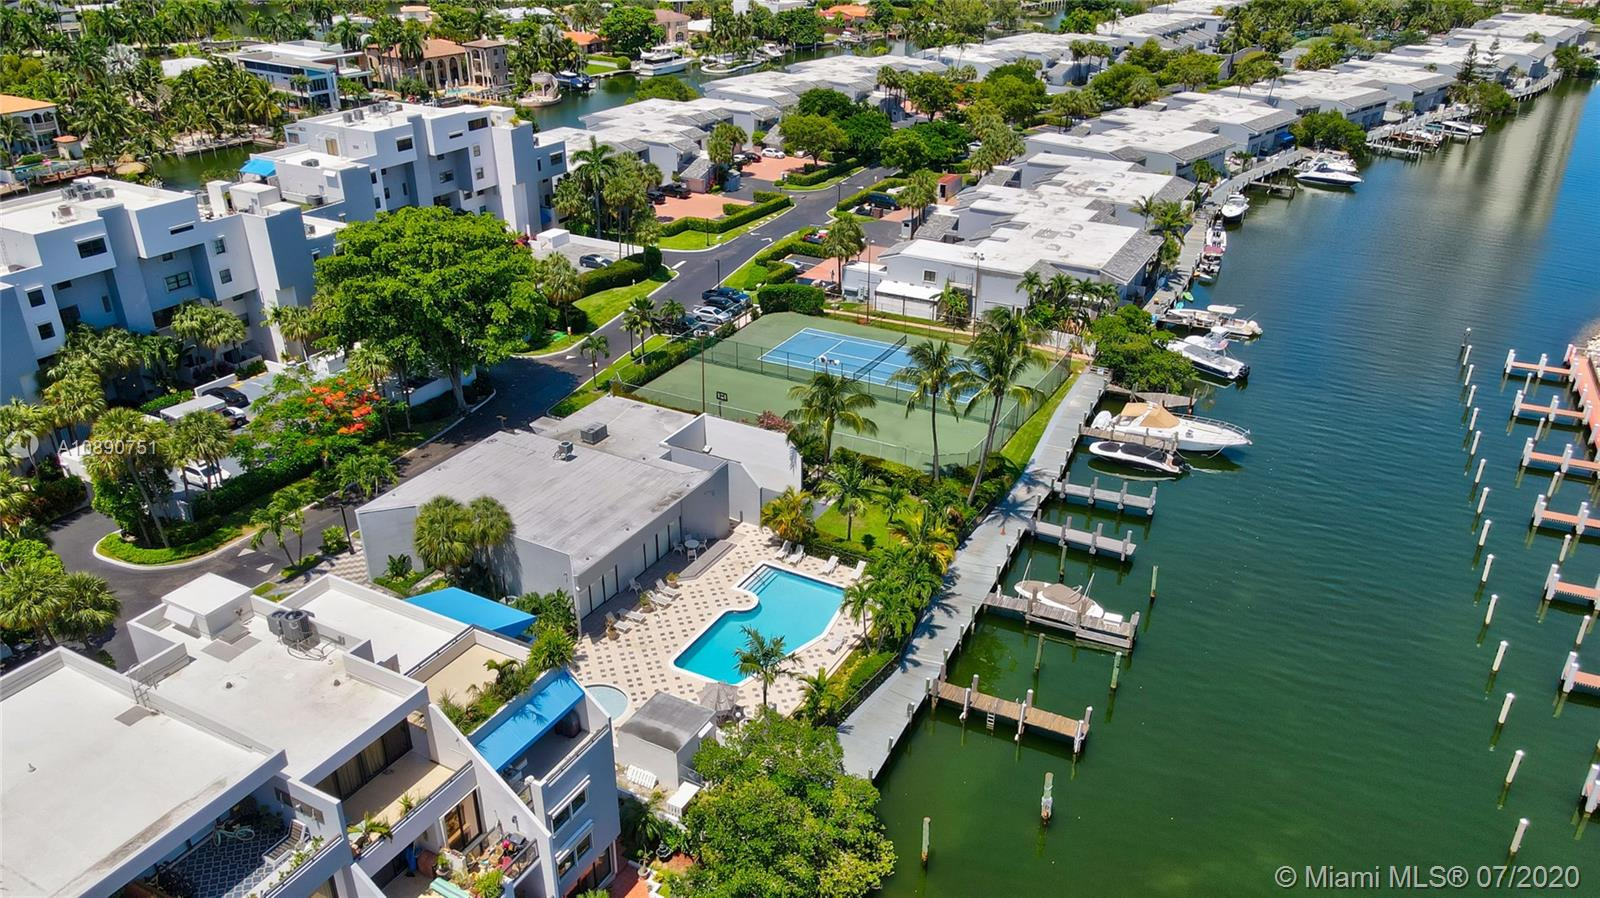 Photo of 425 Poinciana Island Drive #1444, Sunny Isles Beach, Florida, 33160 - Aerial canal view facing east